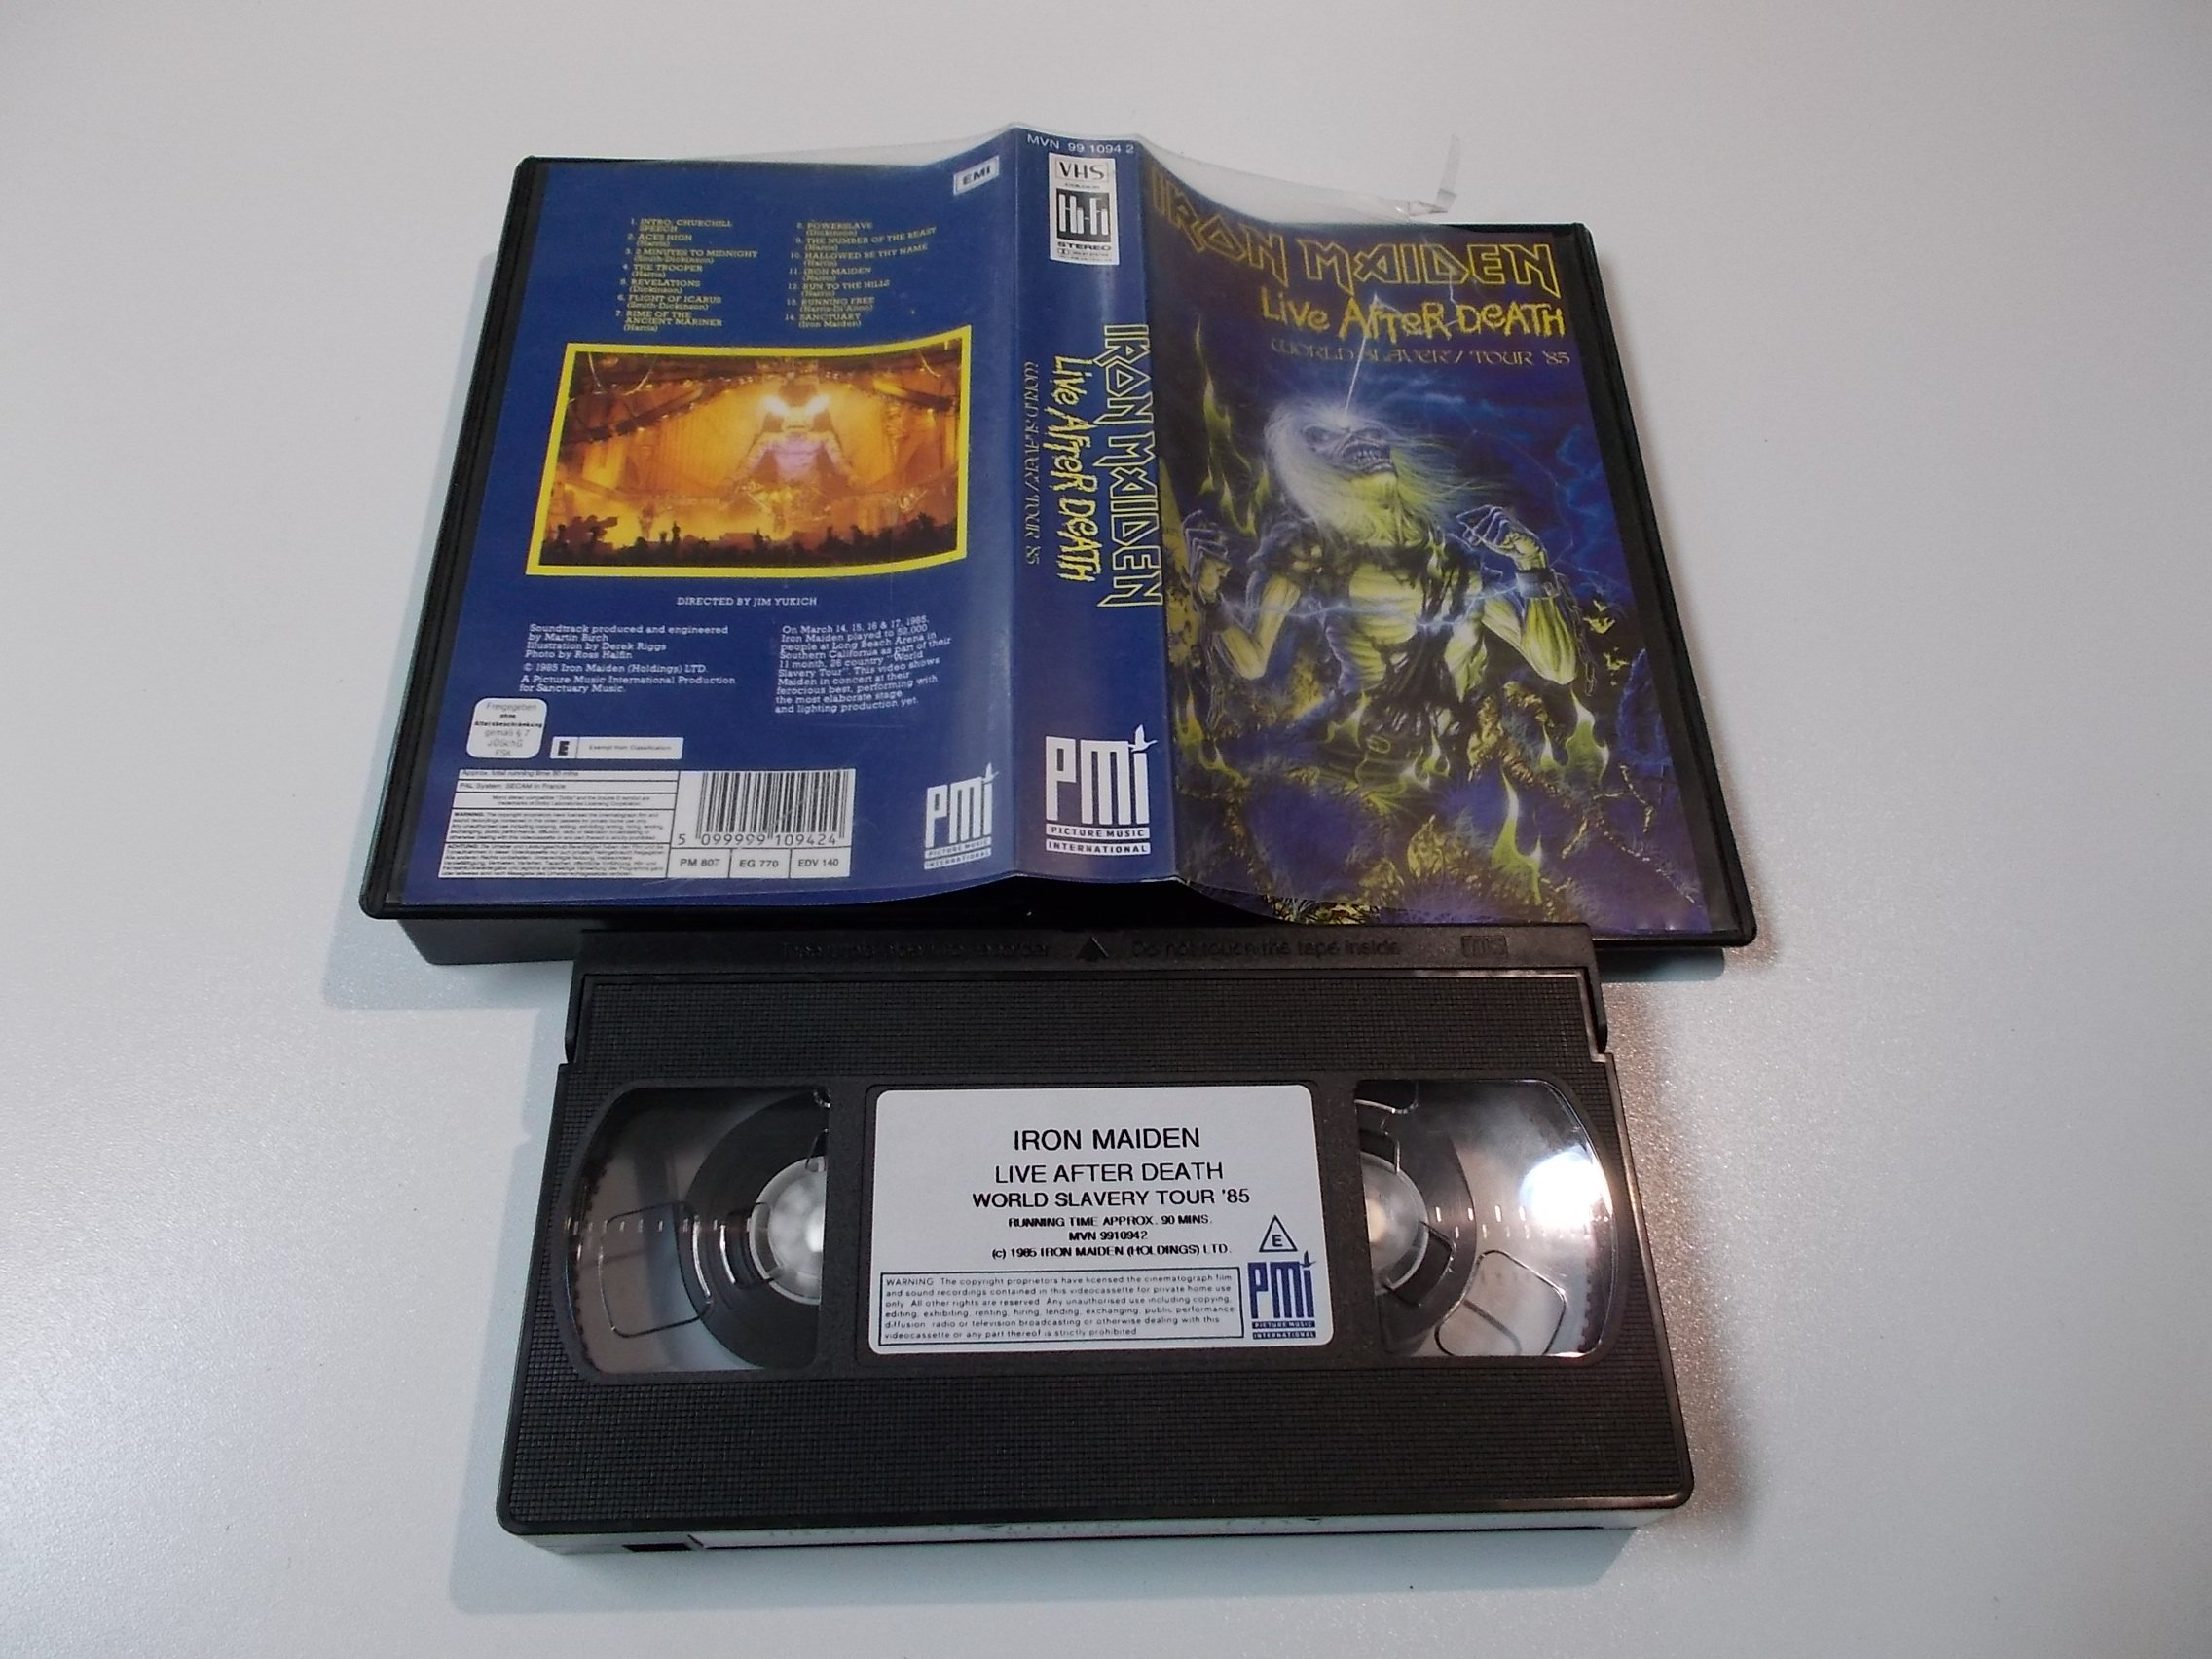 IRON MAIDEN LIVE AFTER DEATH - Kaseta Video VHS - 1486 Opole